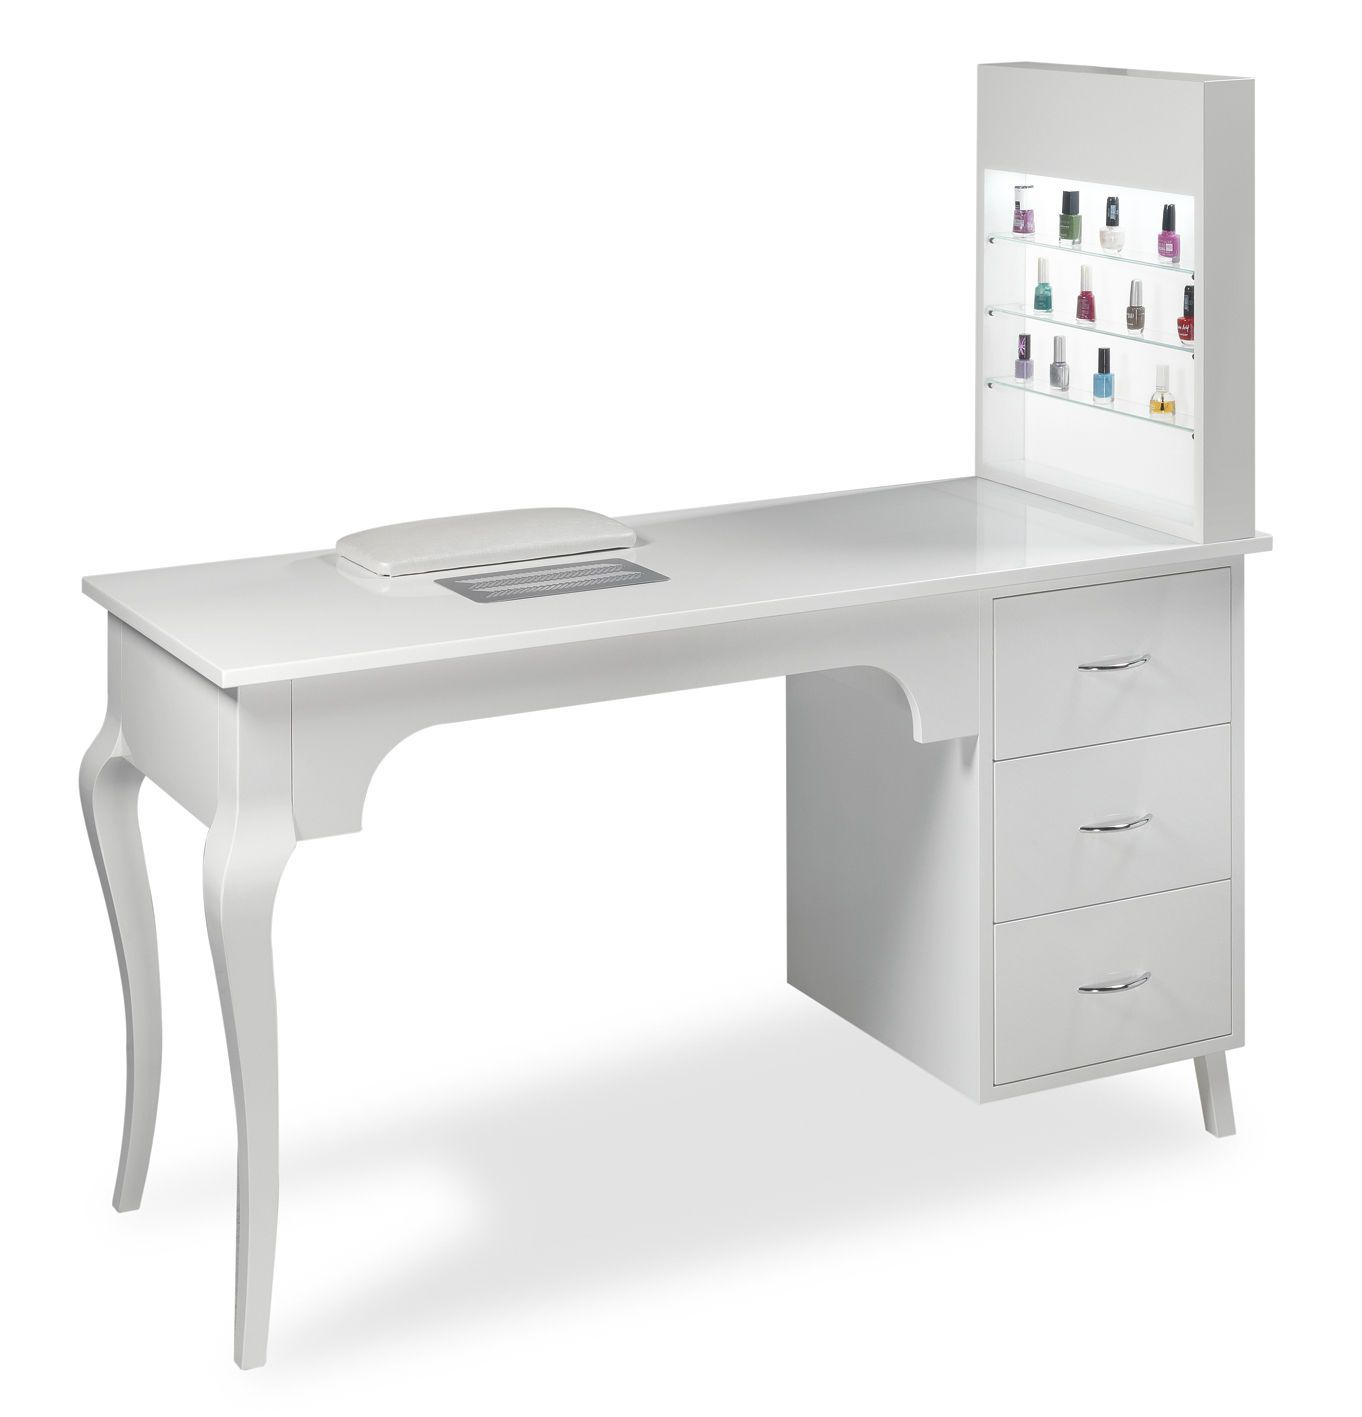 Manicure table with vacuum cleaner estetica vezzosi marylin nails vezzosi pedicure chairs - Table bar salon ...